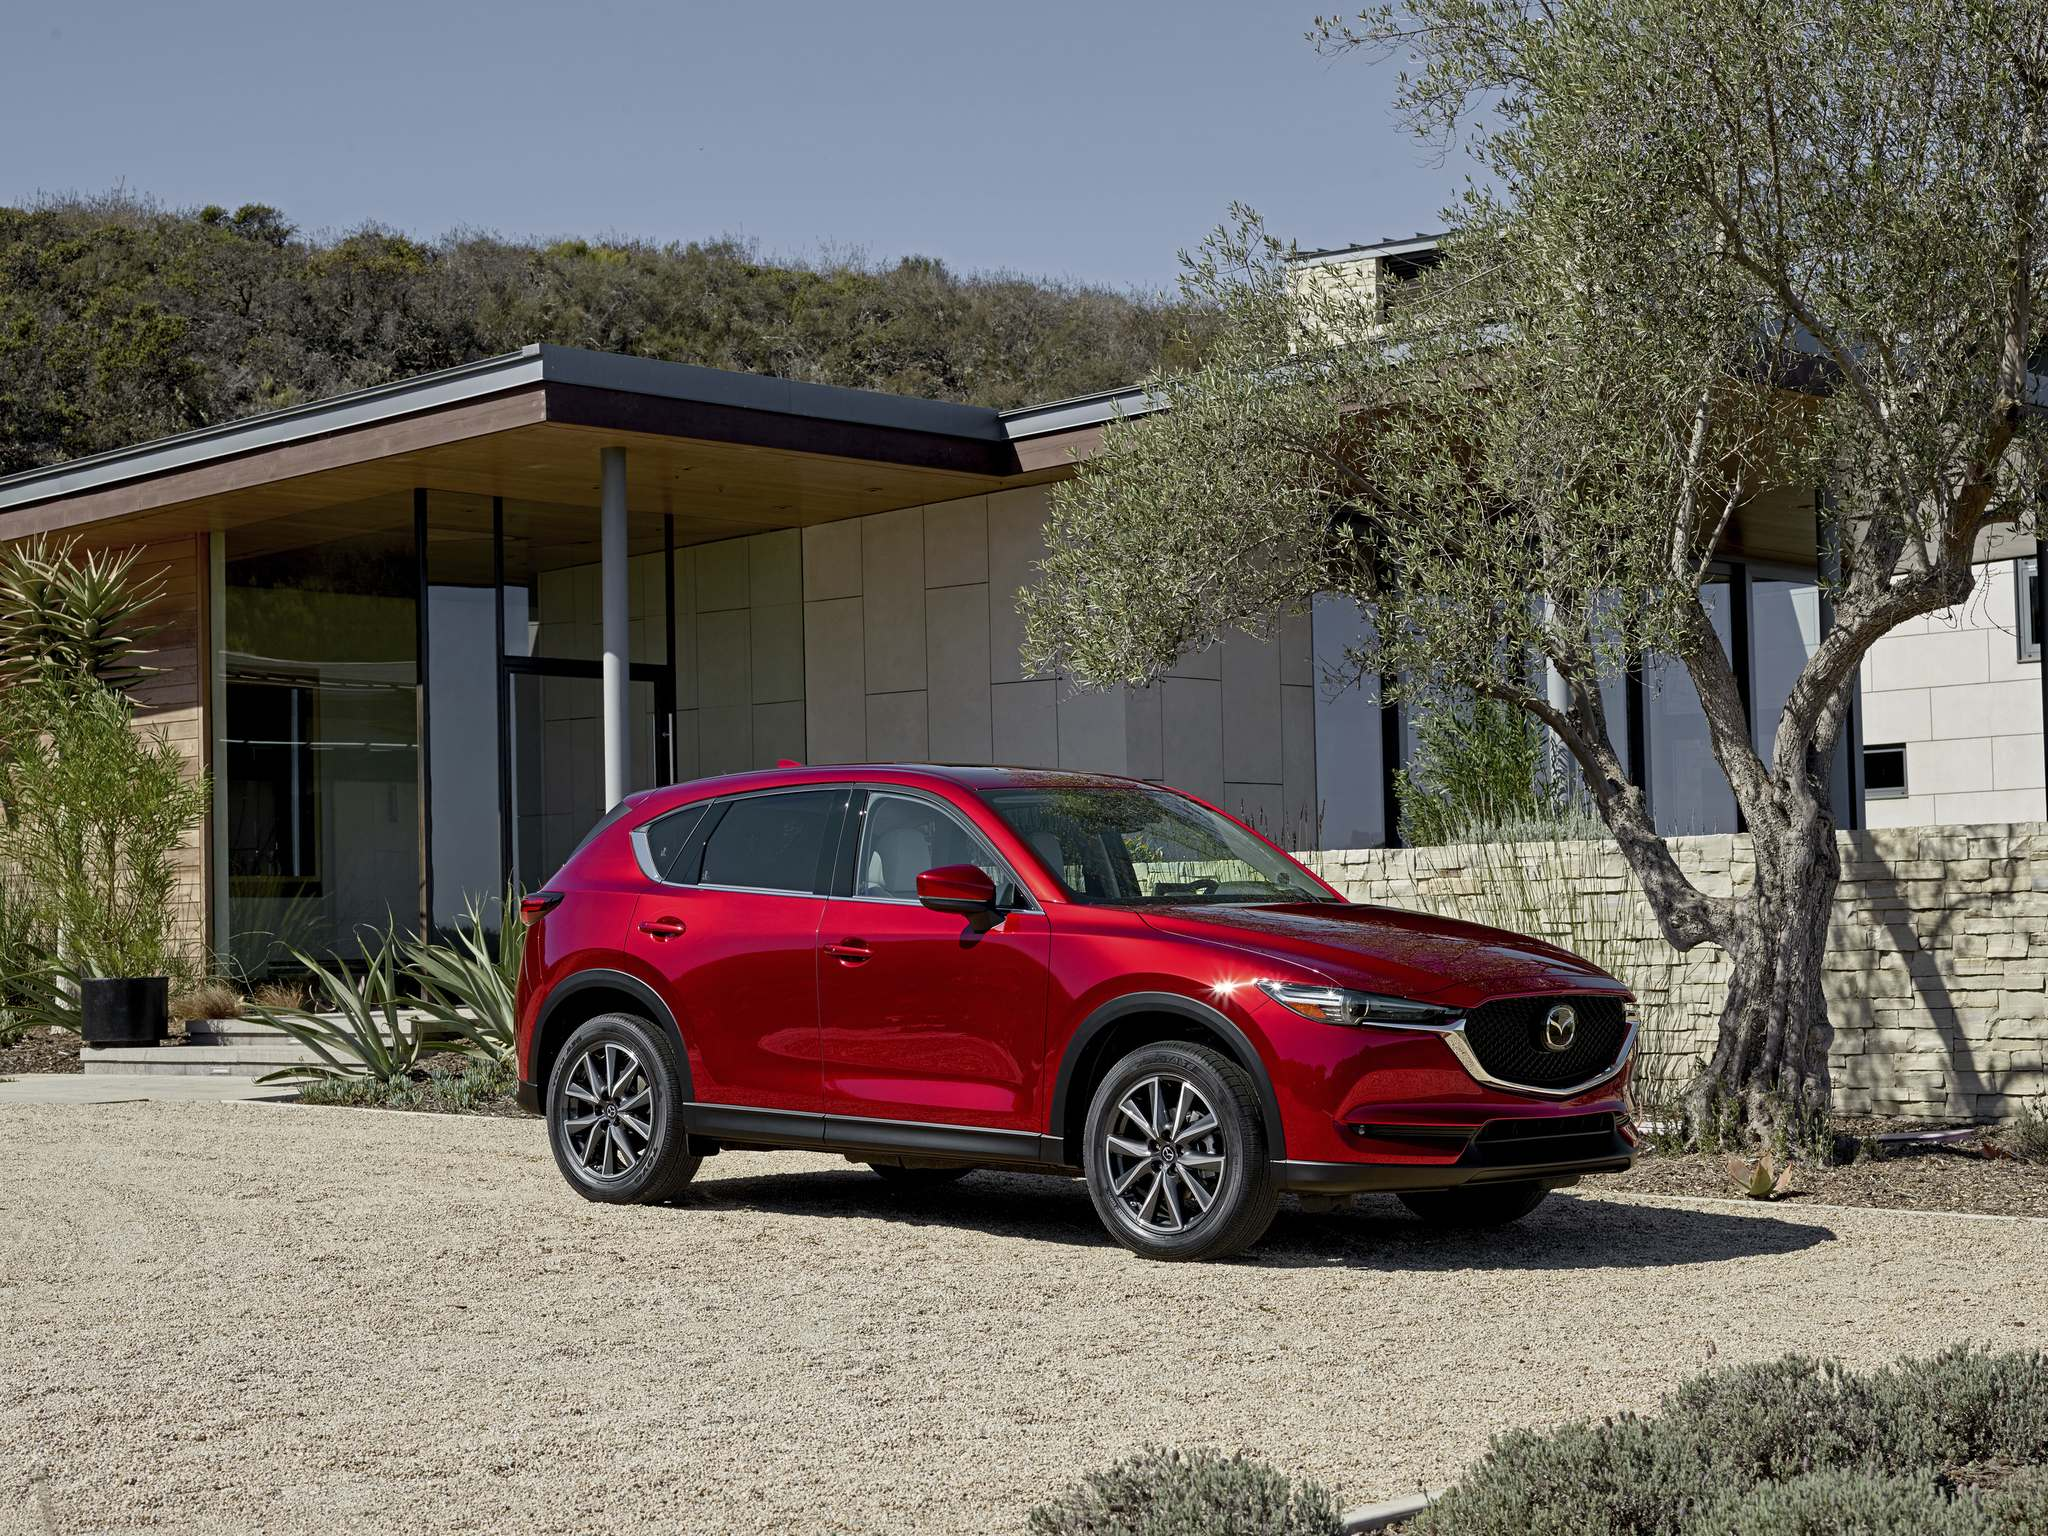 The 2017 Mazda CX-5 with its forward-leaning grille and linear design of the LED lights brings a new level of class and enjoyment.